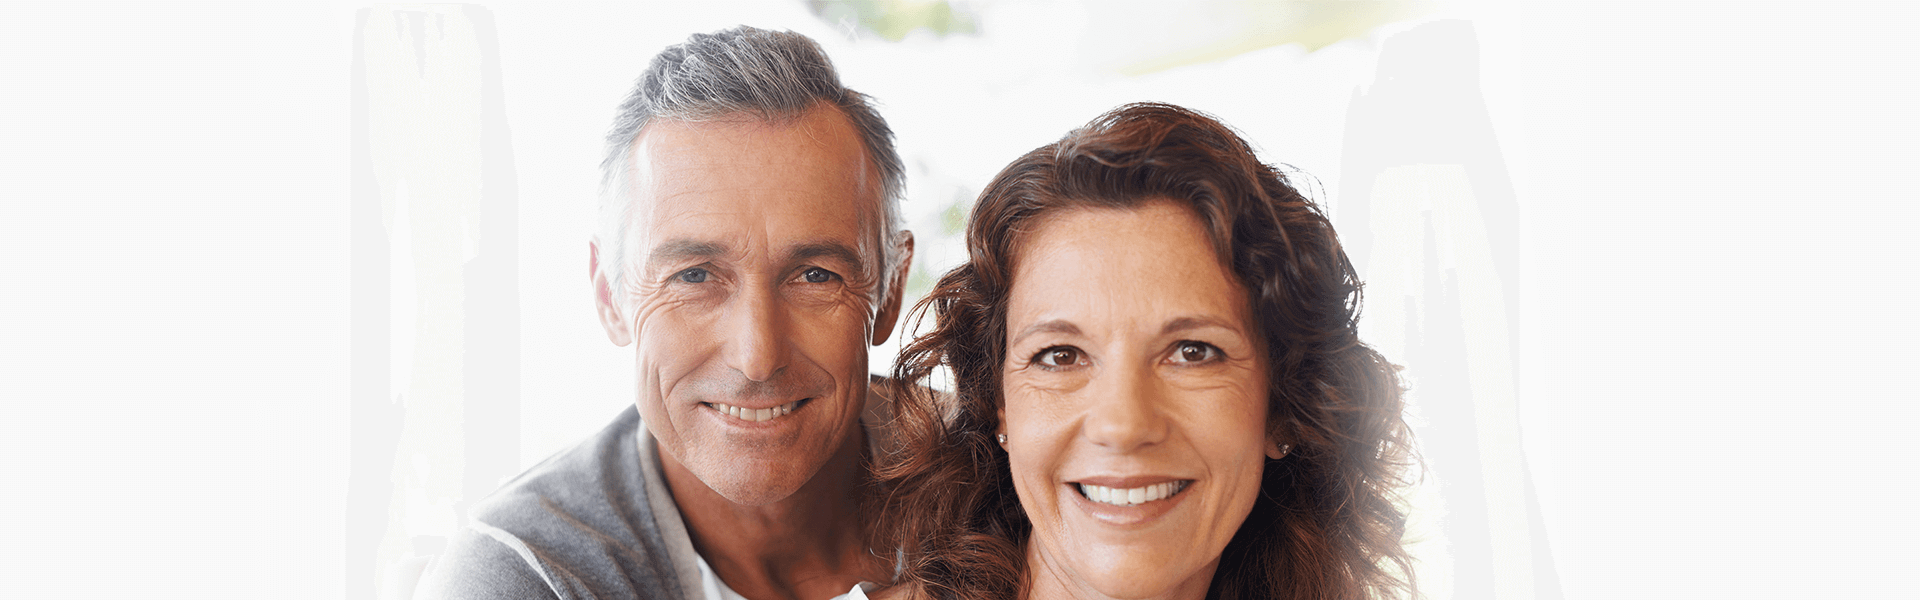 Dental Implants: 4 Reasons to Consider Dental Implants